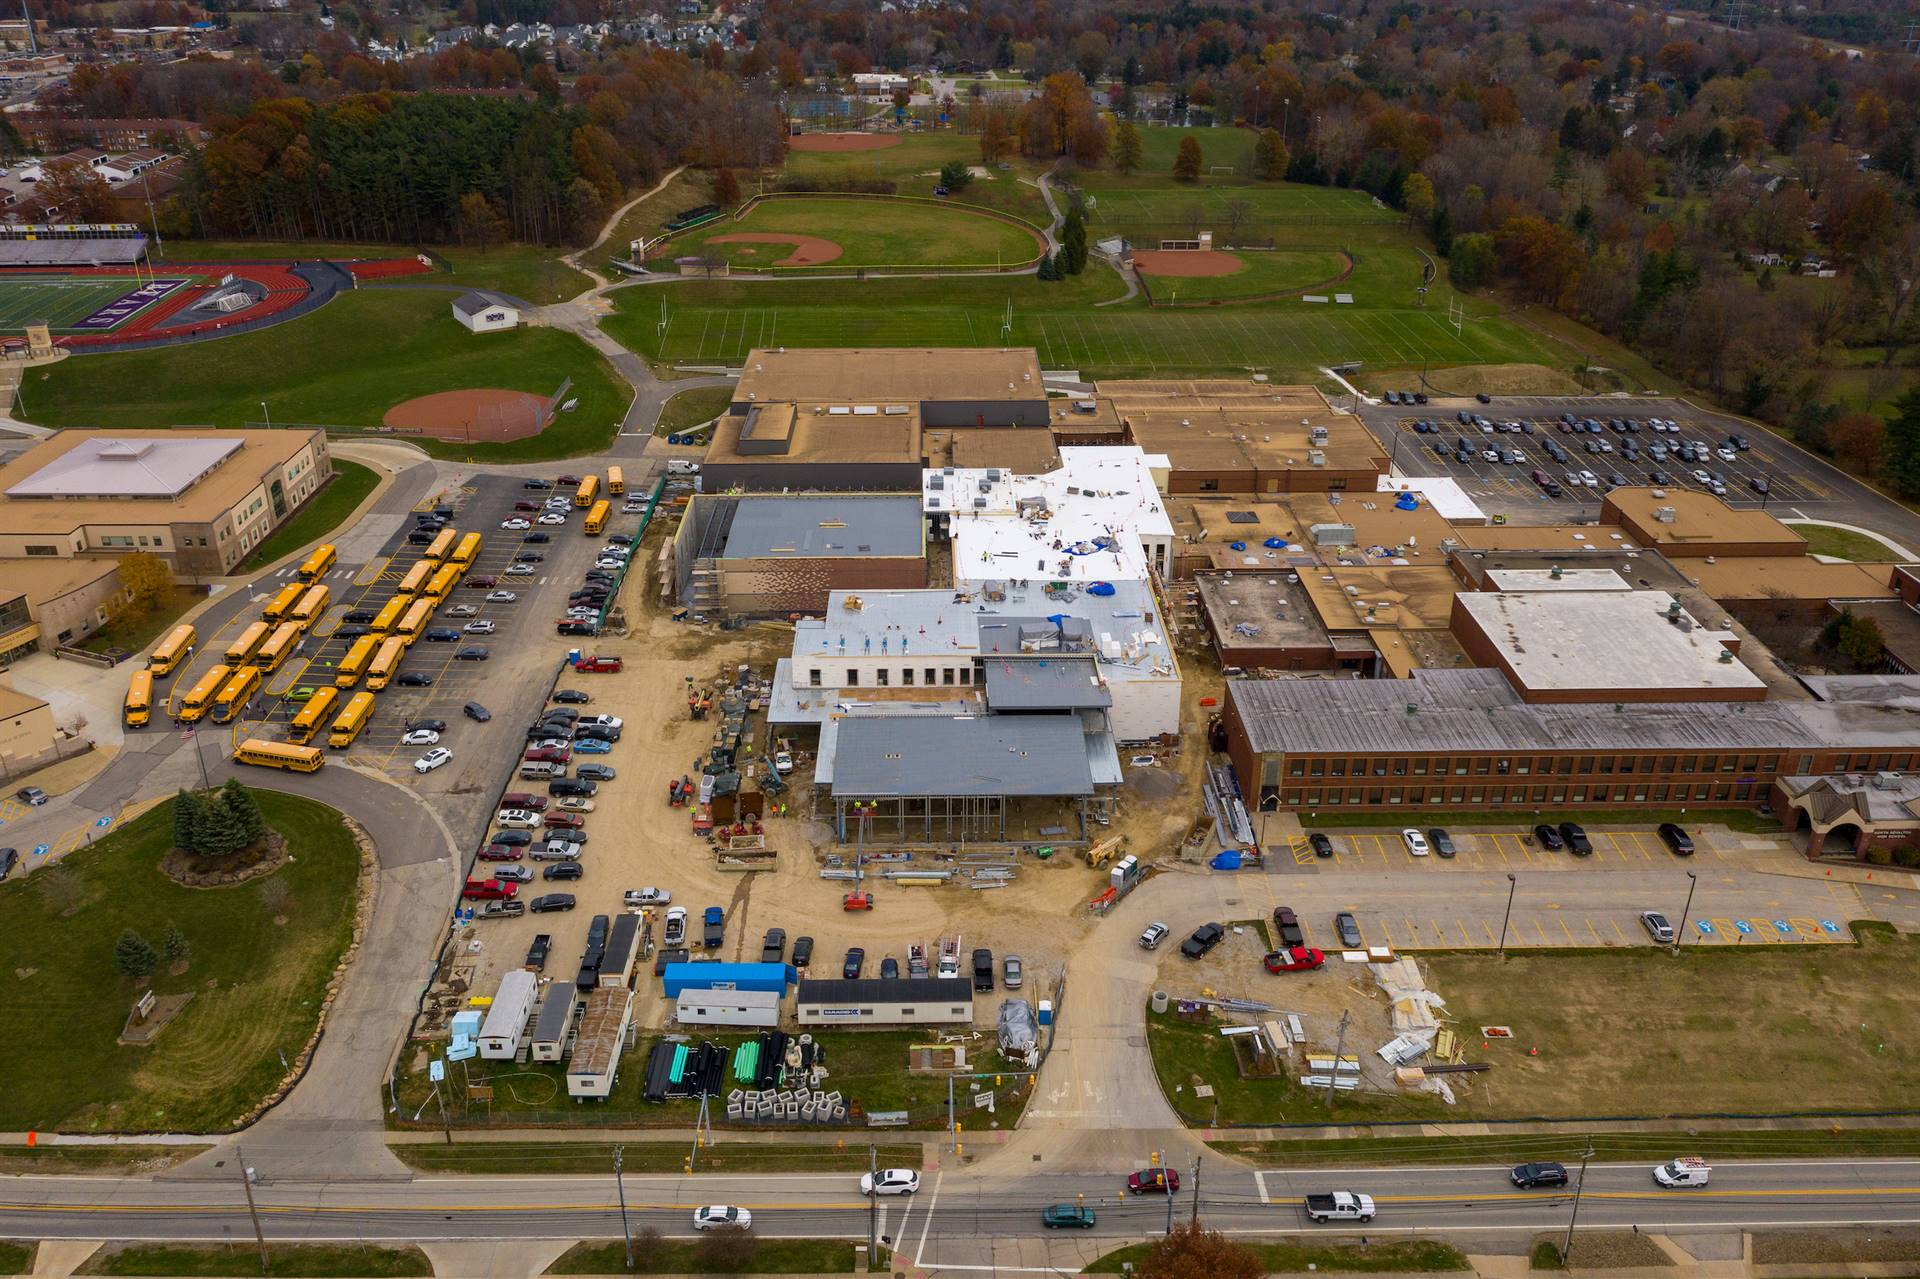 NRHS Drone Footage November 2019